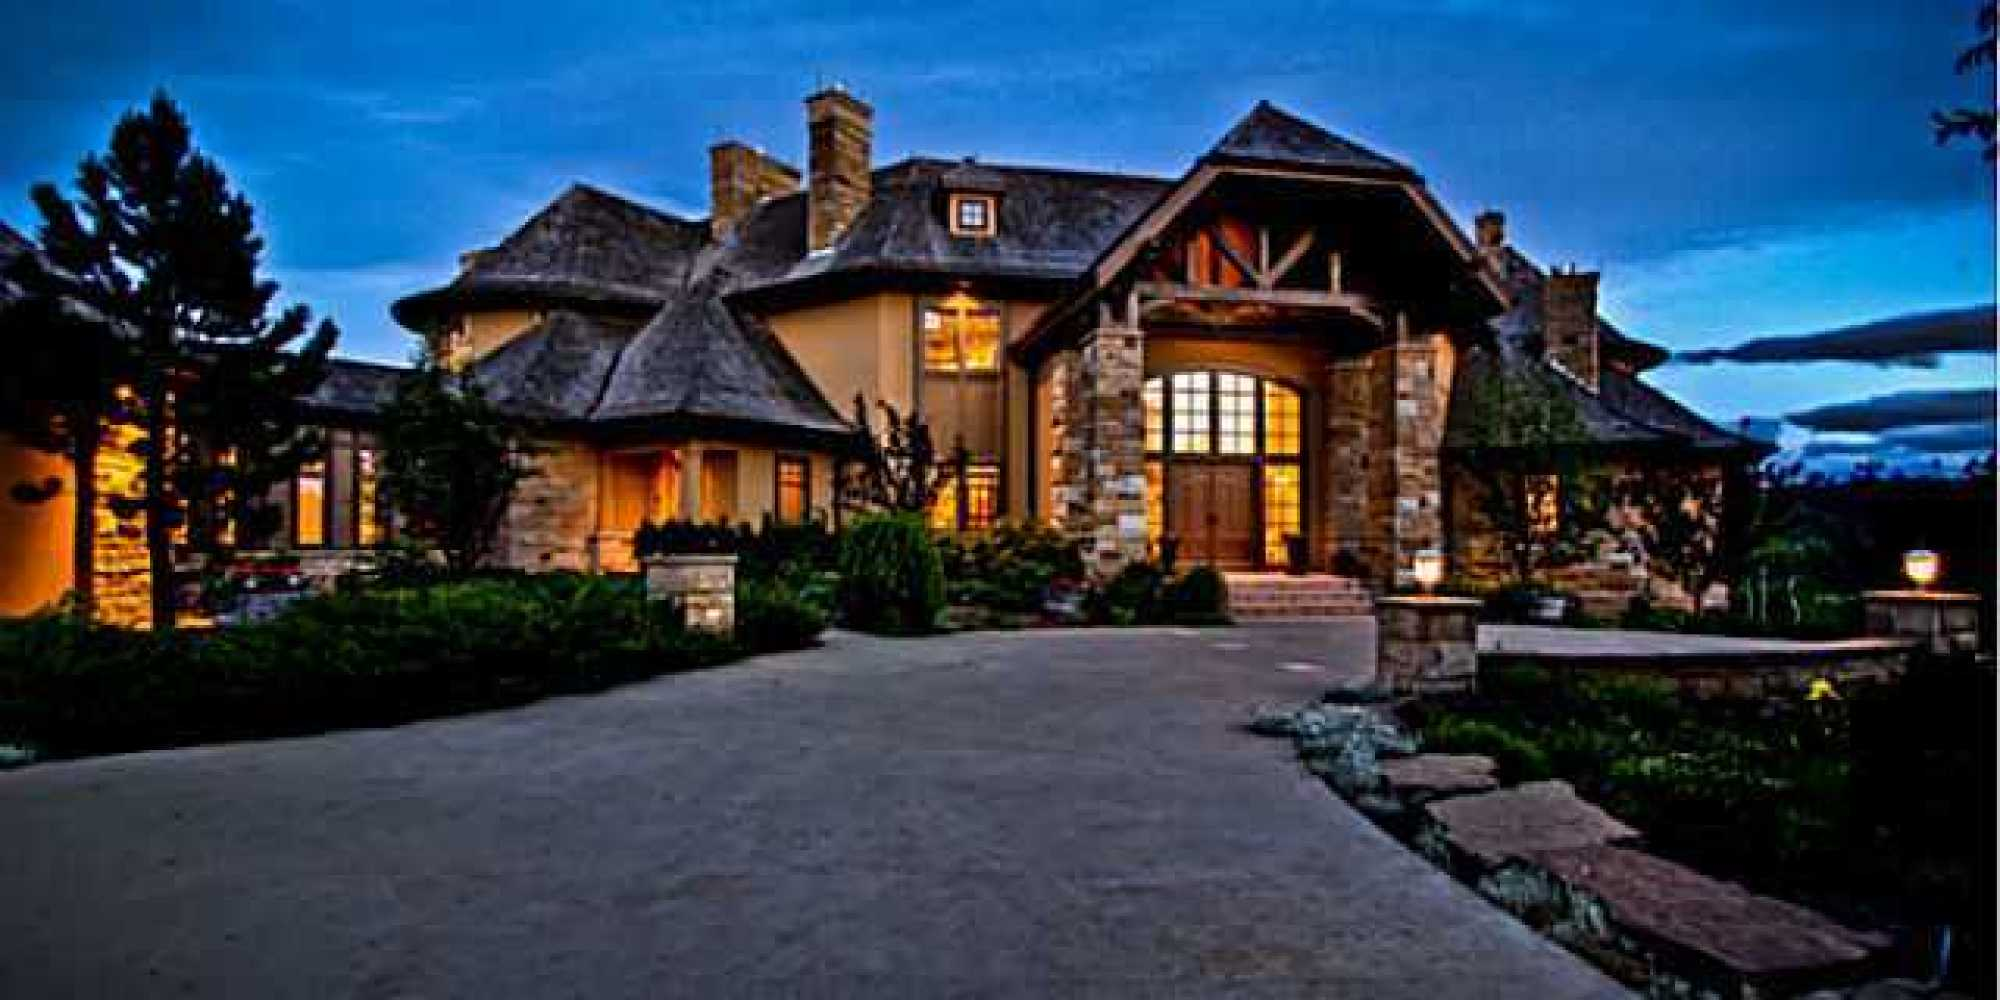 Alberta 39 s most expensive homes for sale the top 3 photos for Modern homes prices